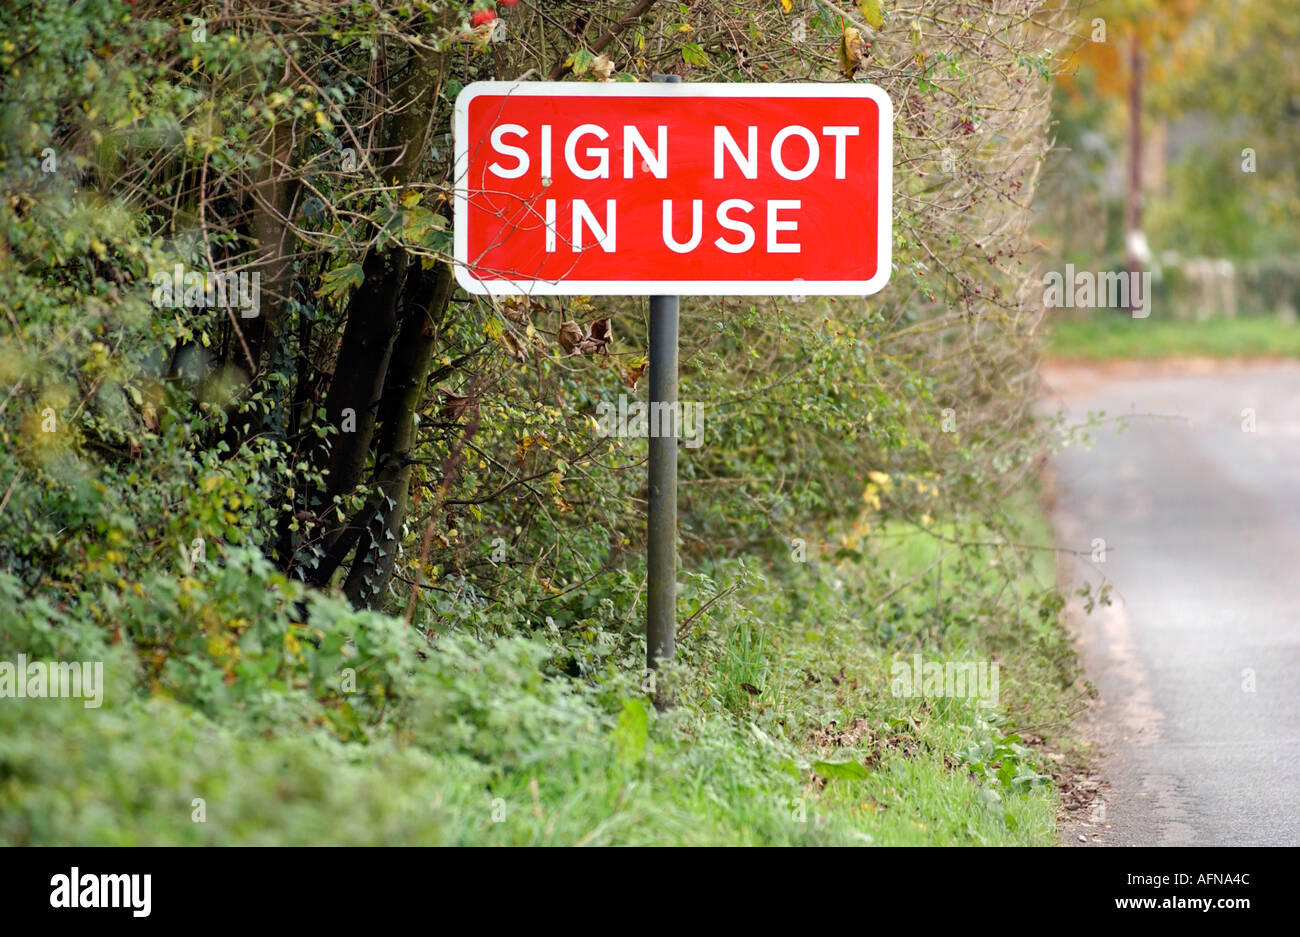 A Sign not in Use sign on a country road - Stock Image